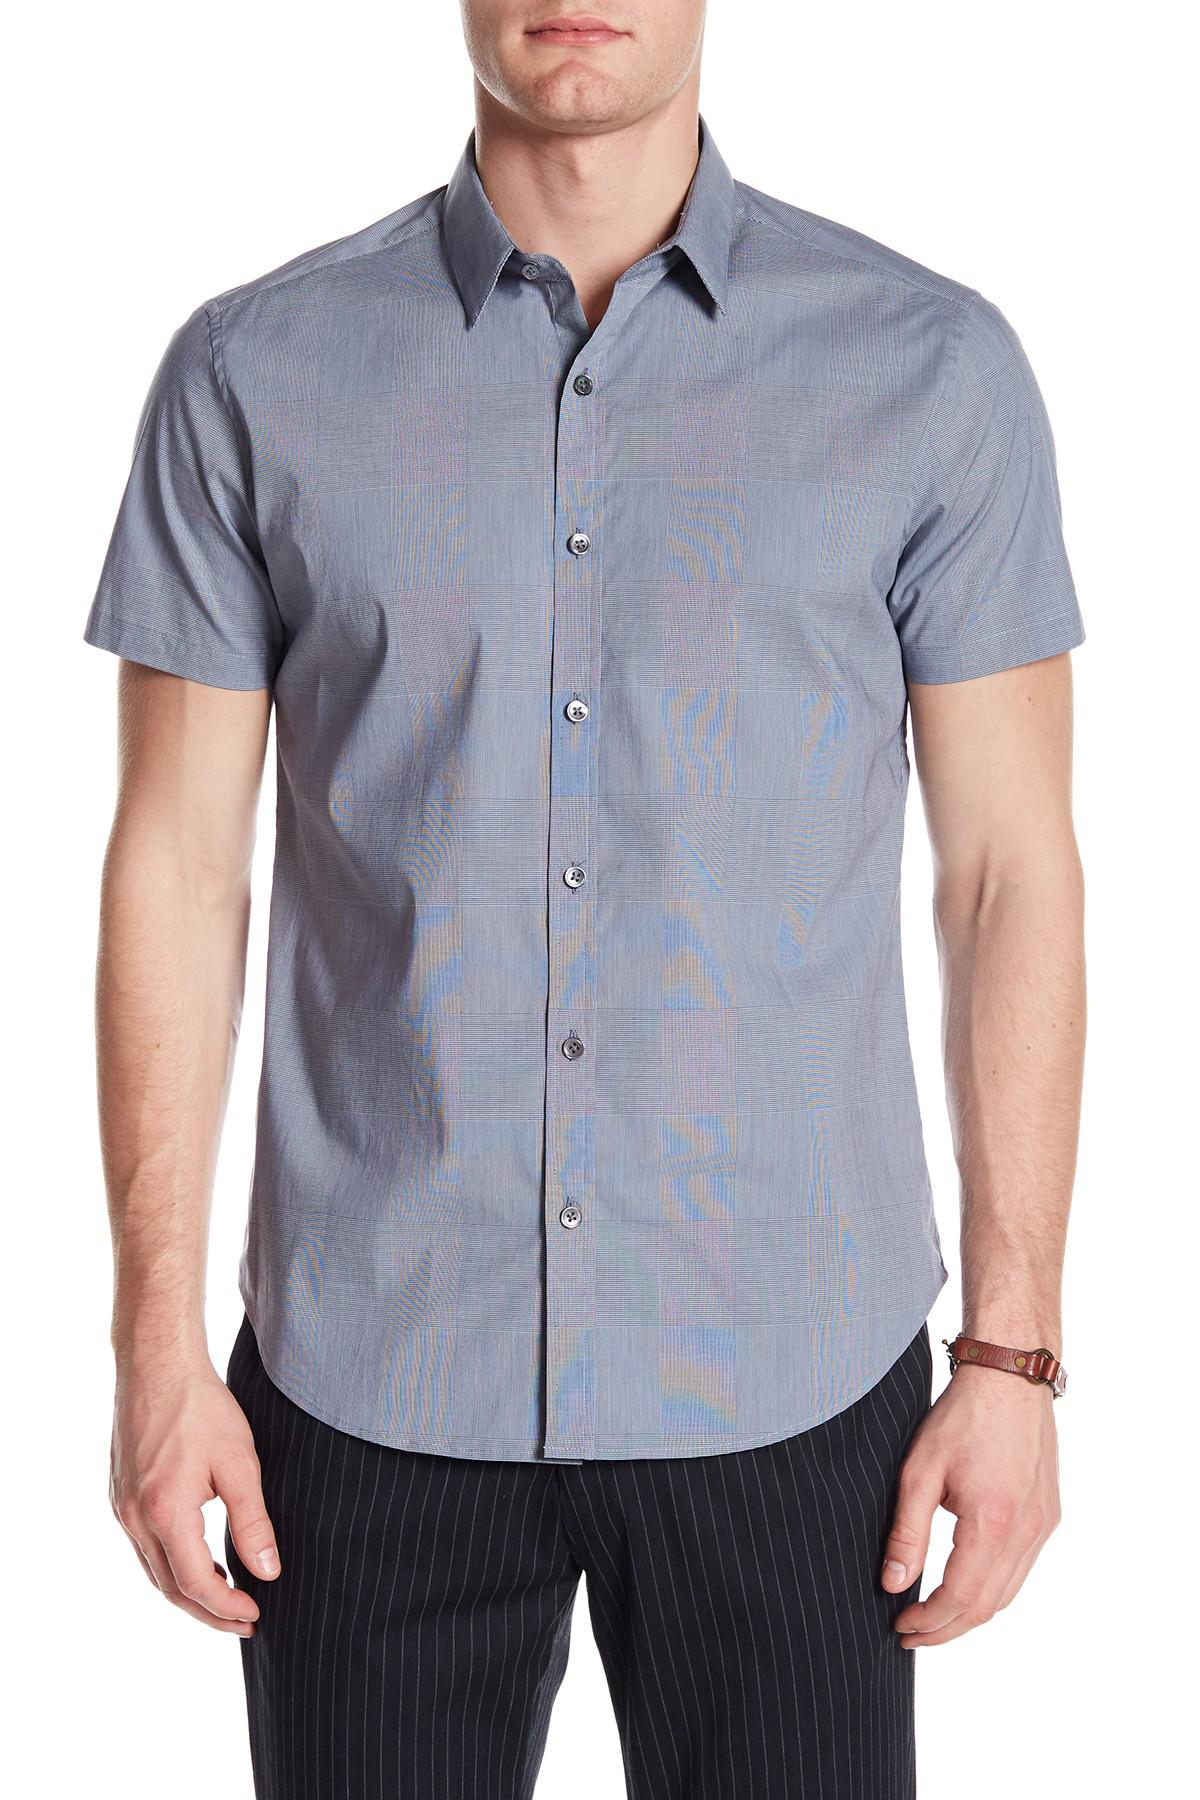 Zack Vanern Point Collar Shirt (Trim Fit) Sale Cheap Online Outlet Shopping Online C2Ago